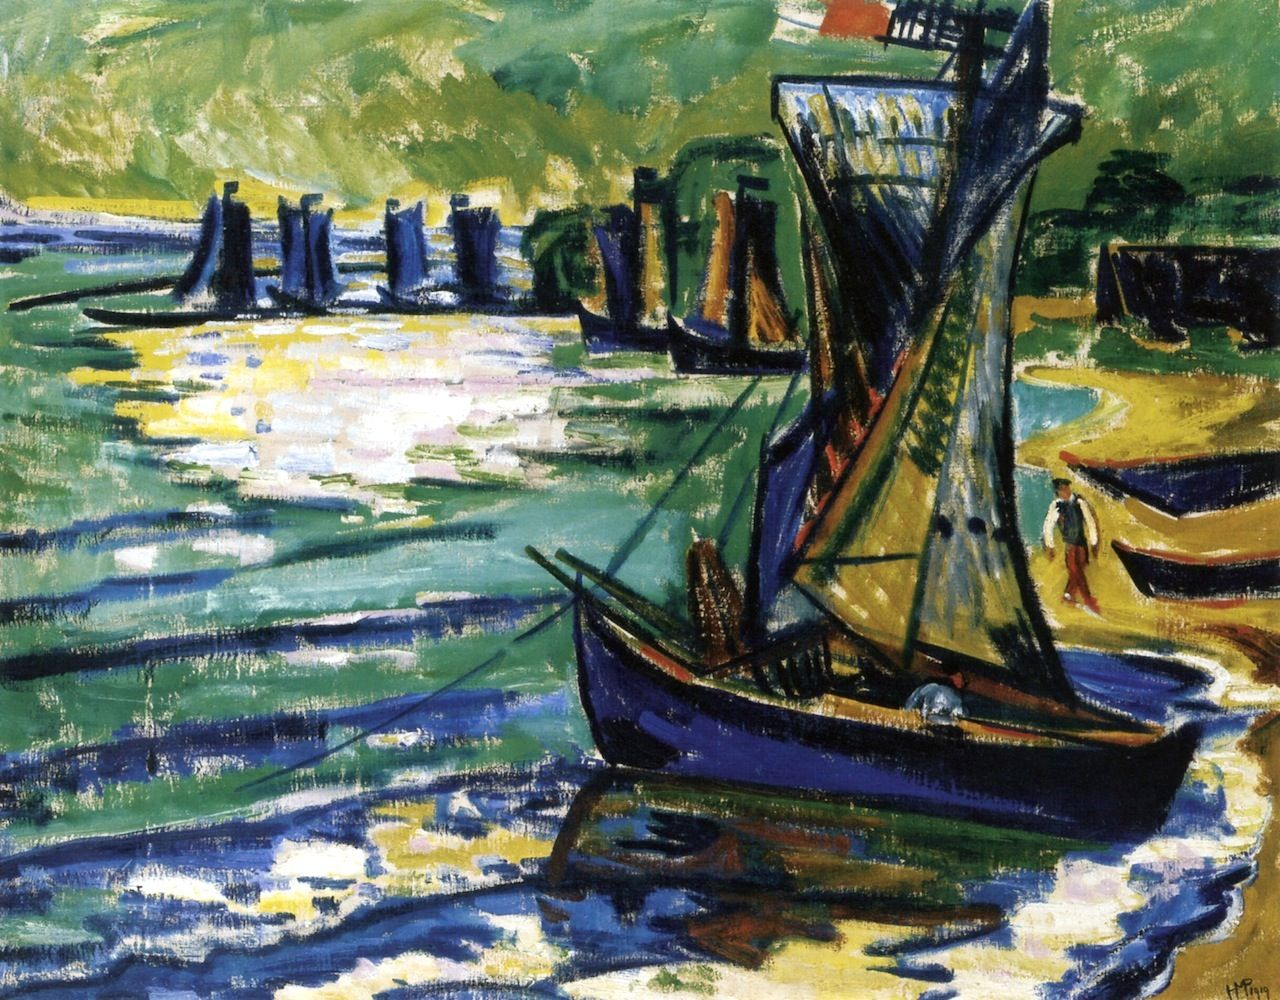 bofransson:  Midday on a Lagoon Hermann Max Pechstein - 1919